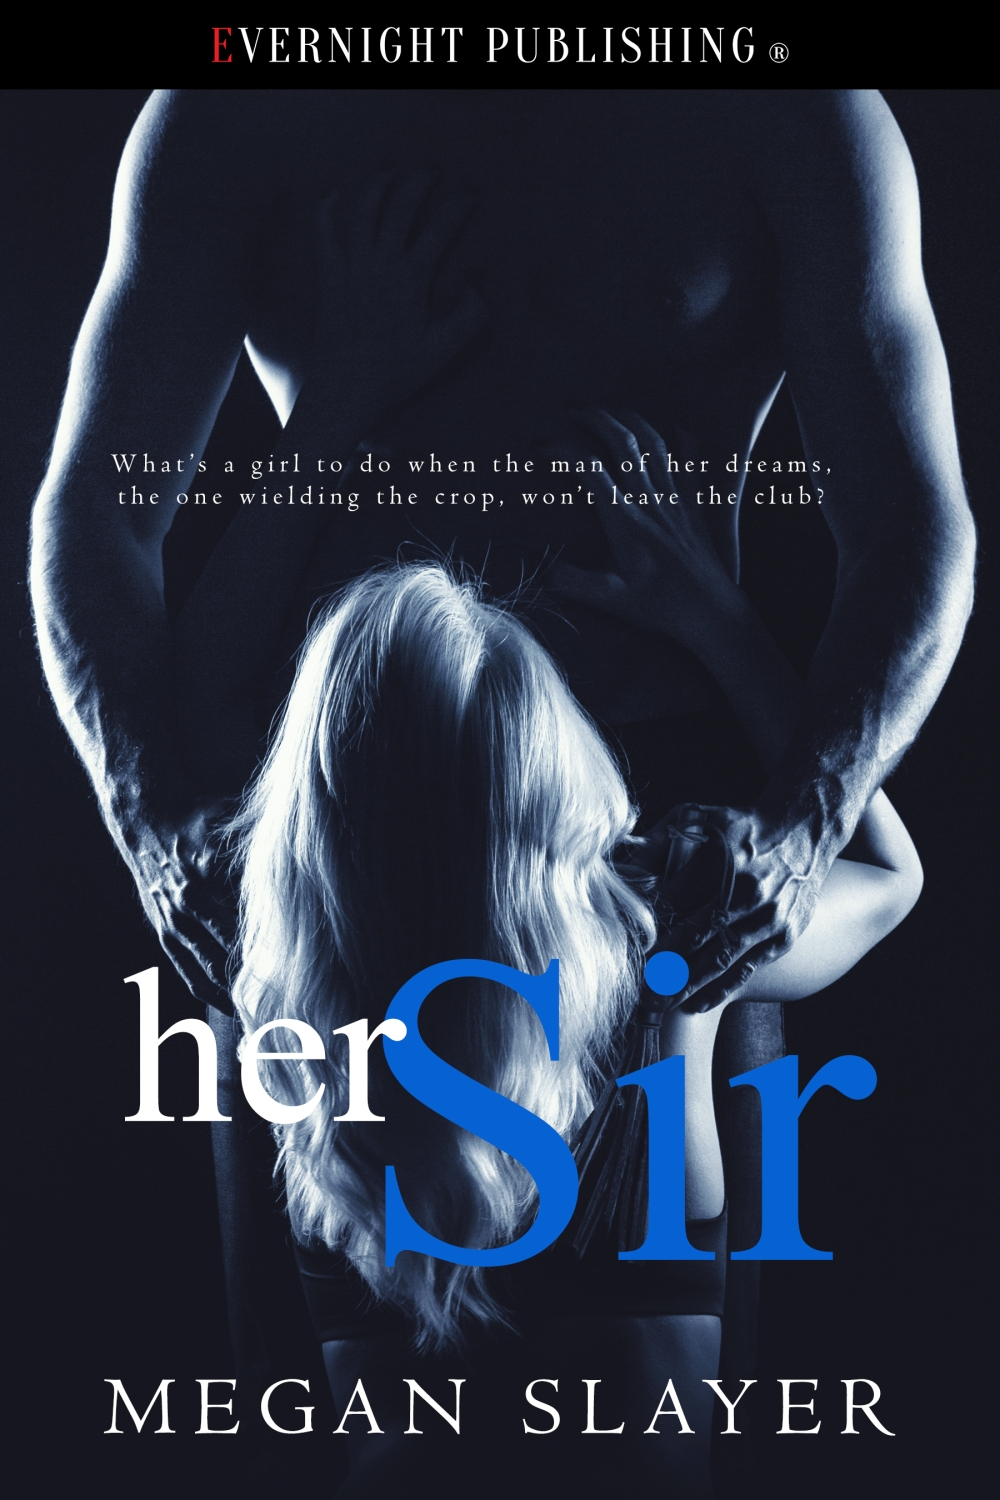 Her-Sir-evernightpublishing-MARCH2018-finalimage.jpg